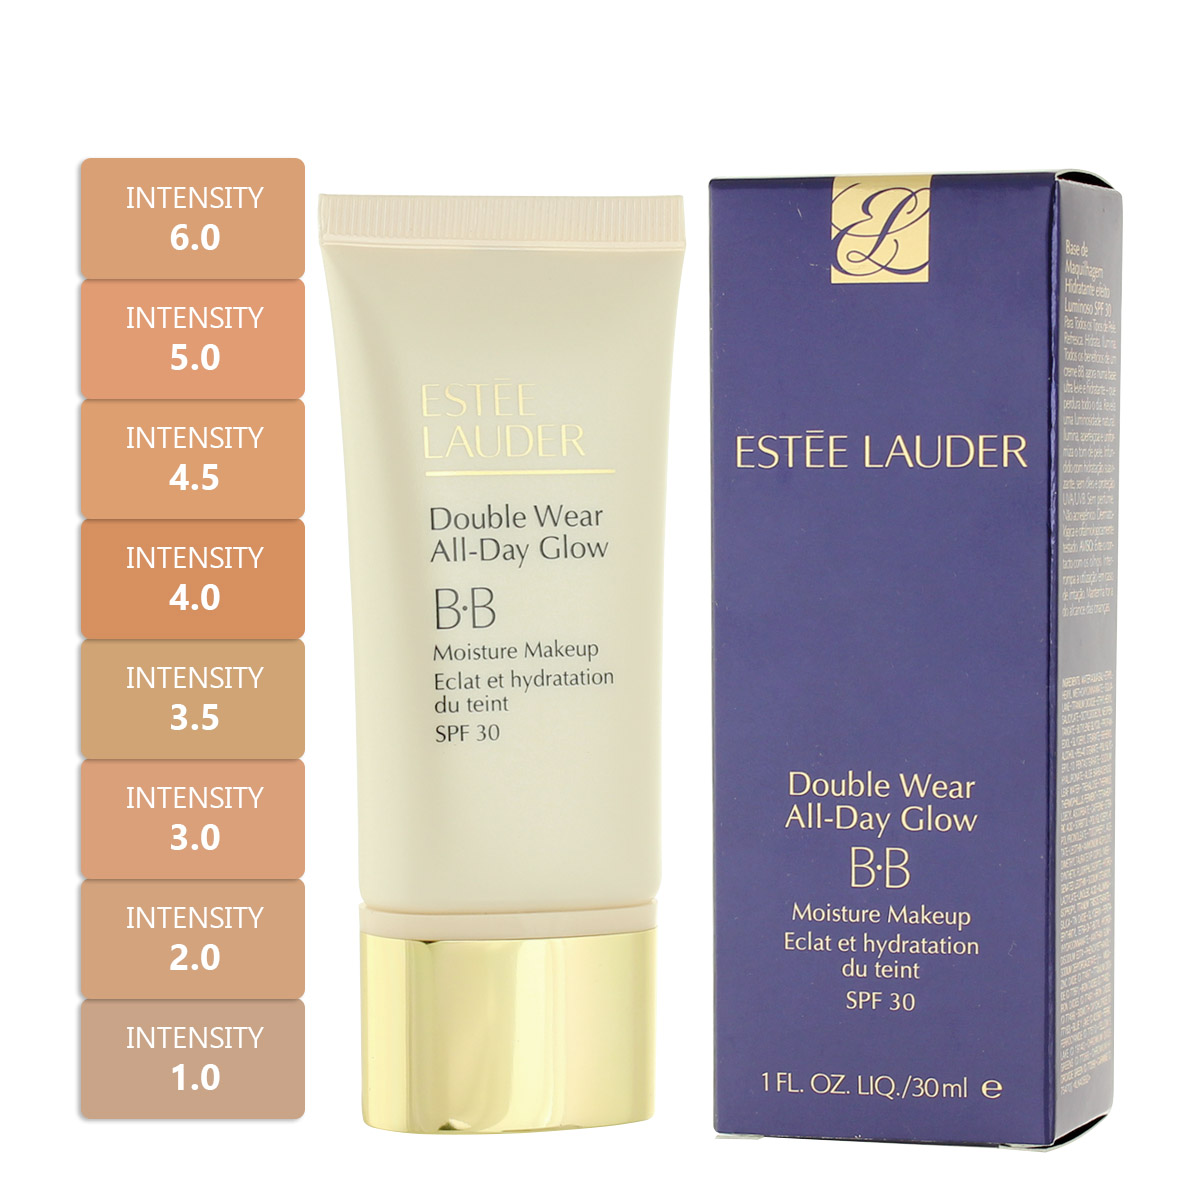 Estée Lauder Double Wear All-Day Glow BB Makeup 30 ml